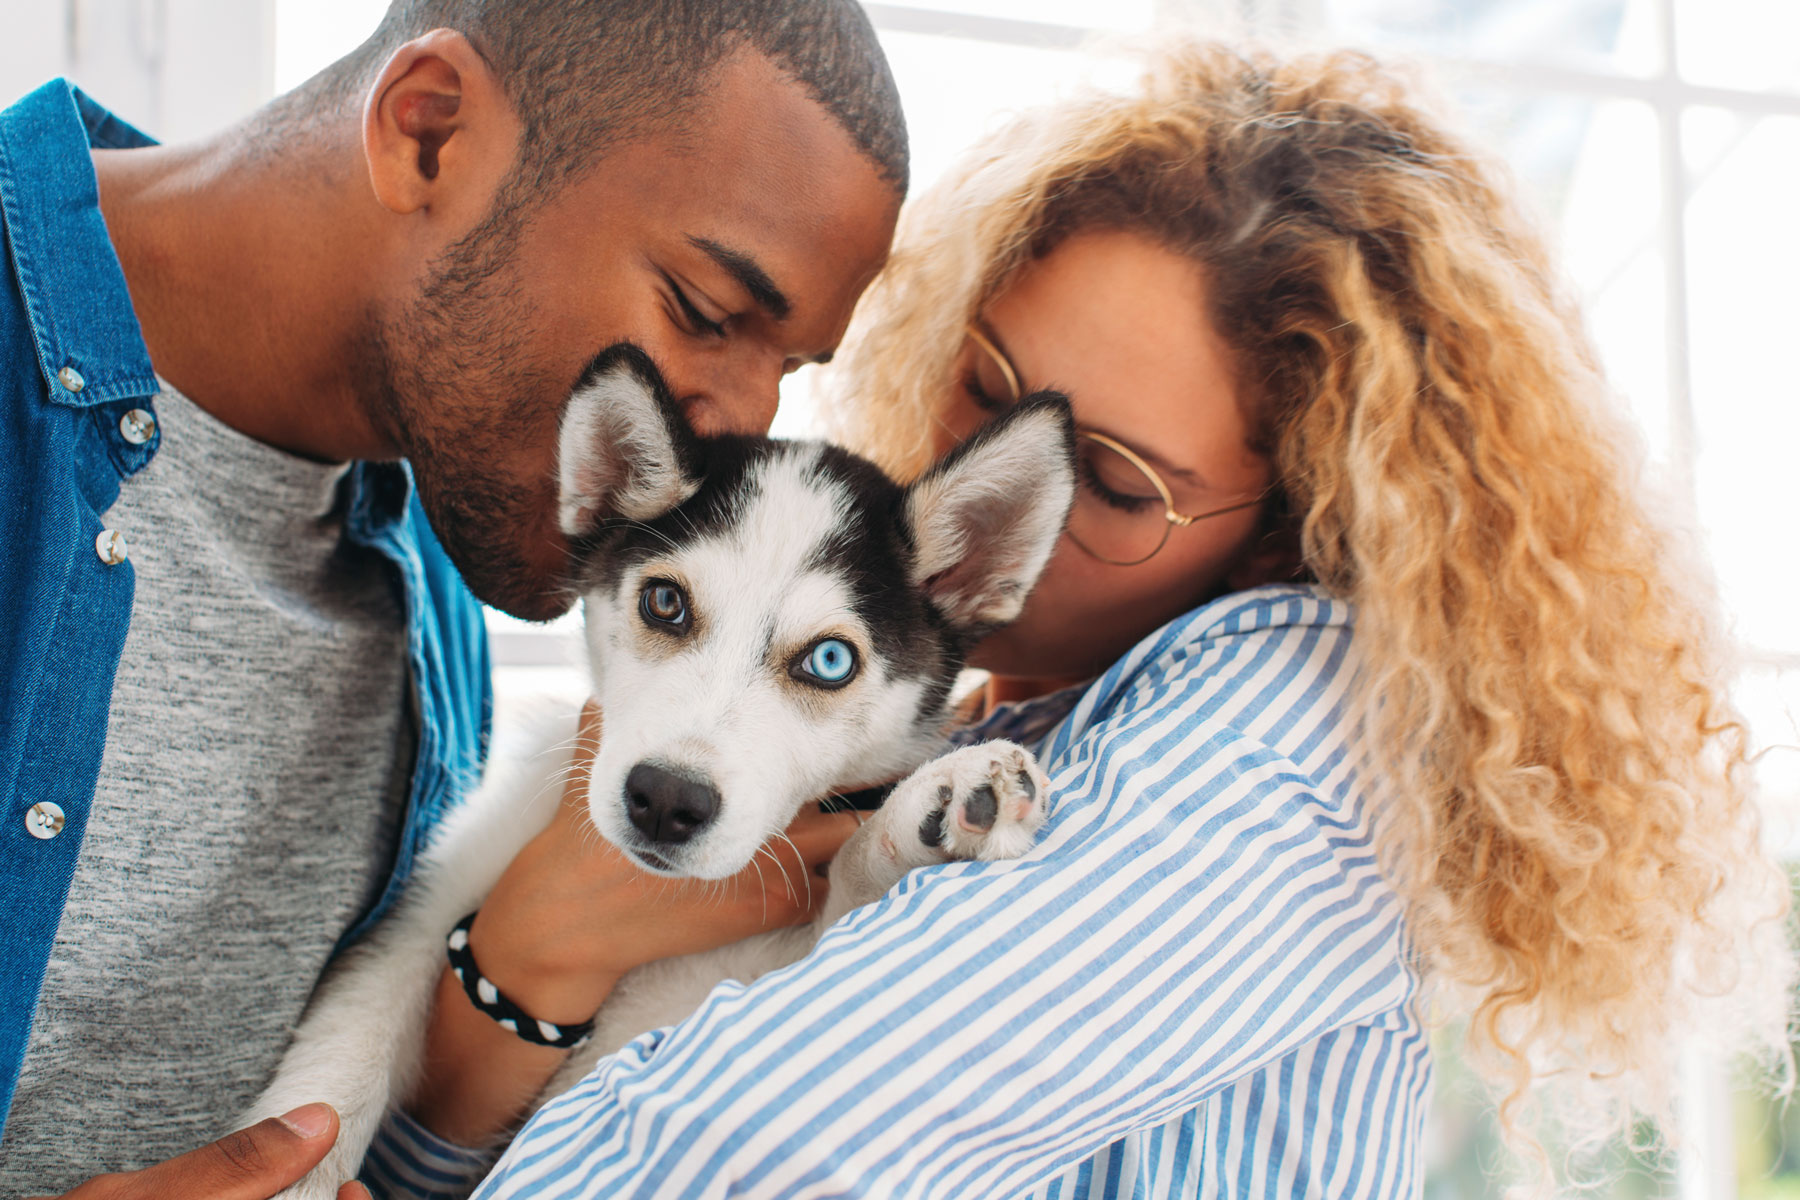 You Can Find More Than Just Puppy Love on This Dating App Made for Dog Owners